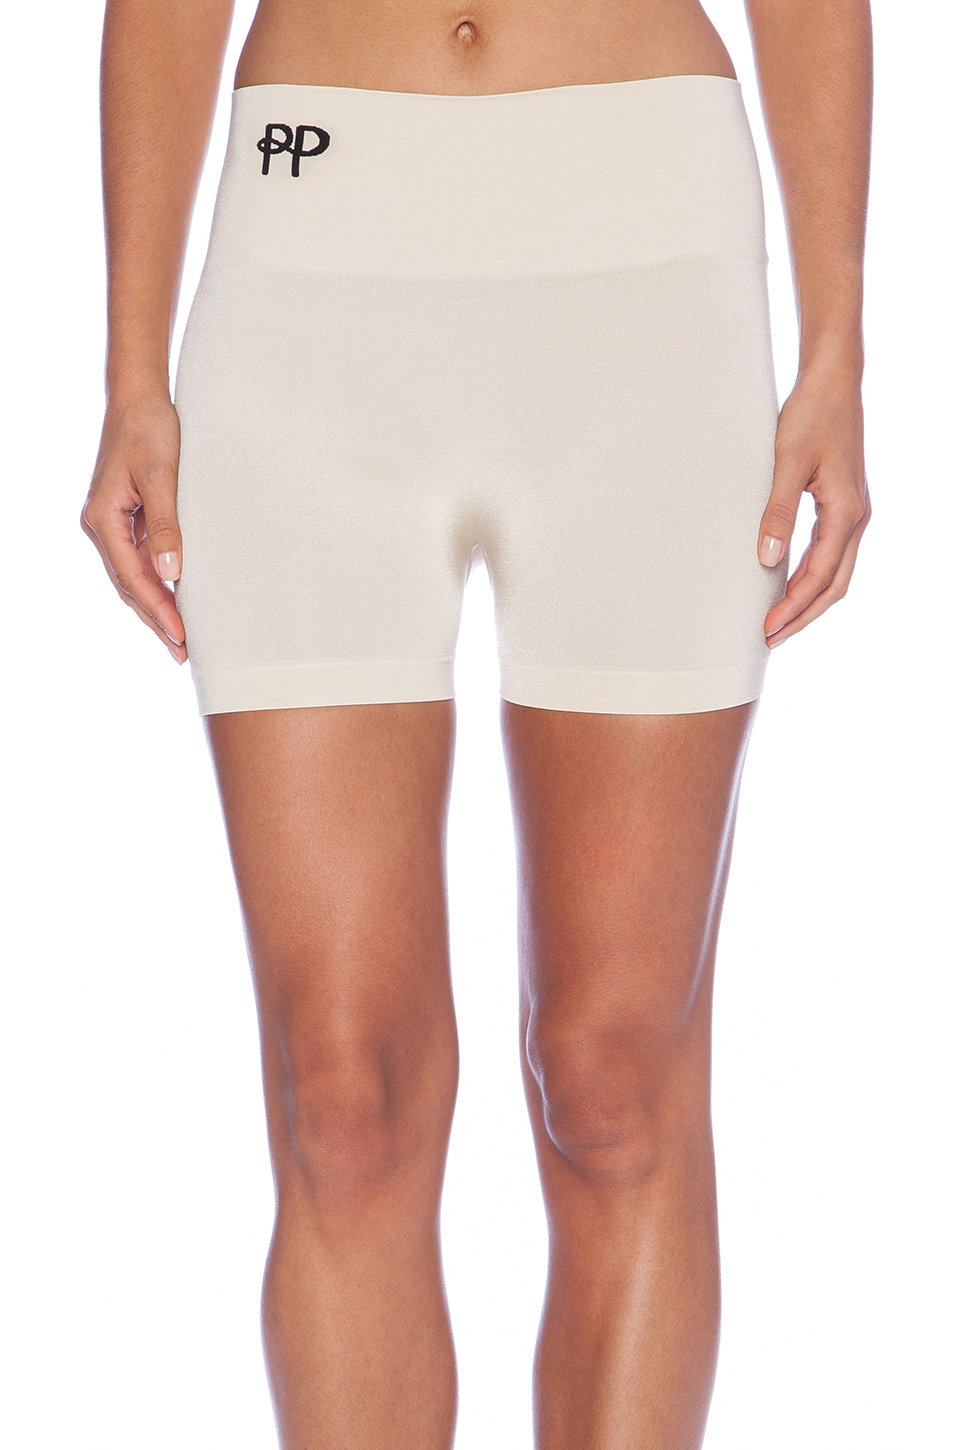 Pretty Polly Shaper Boy Short In Nude Natural - Lyst-7591